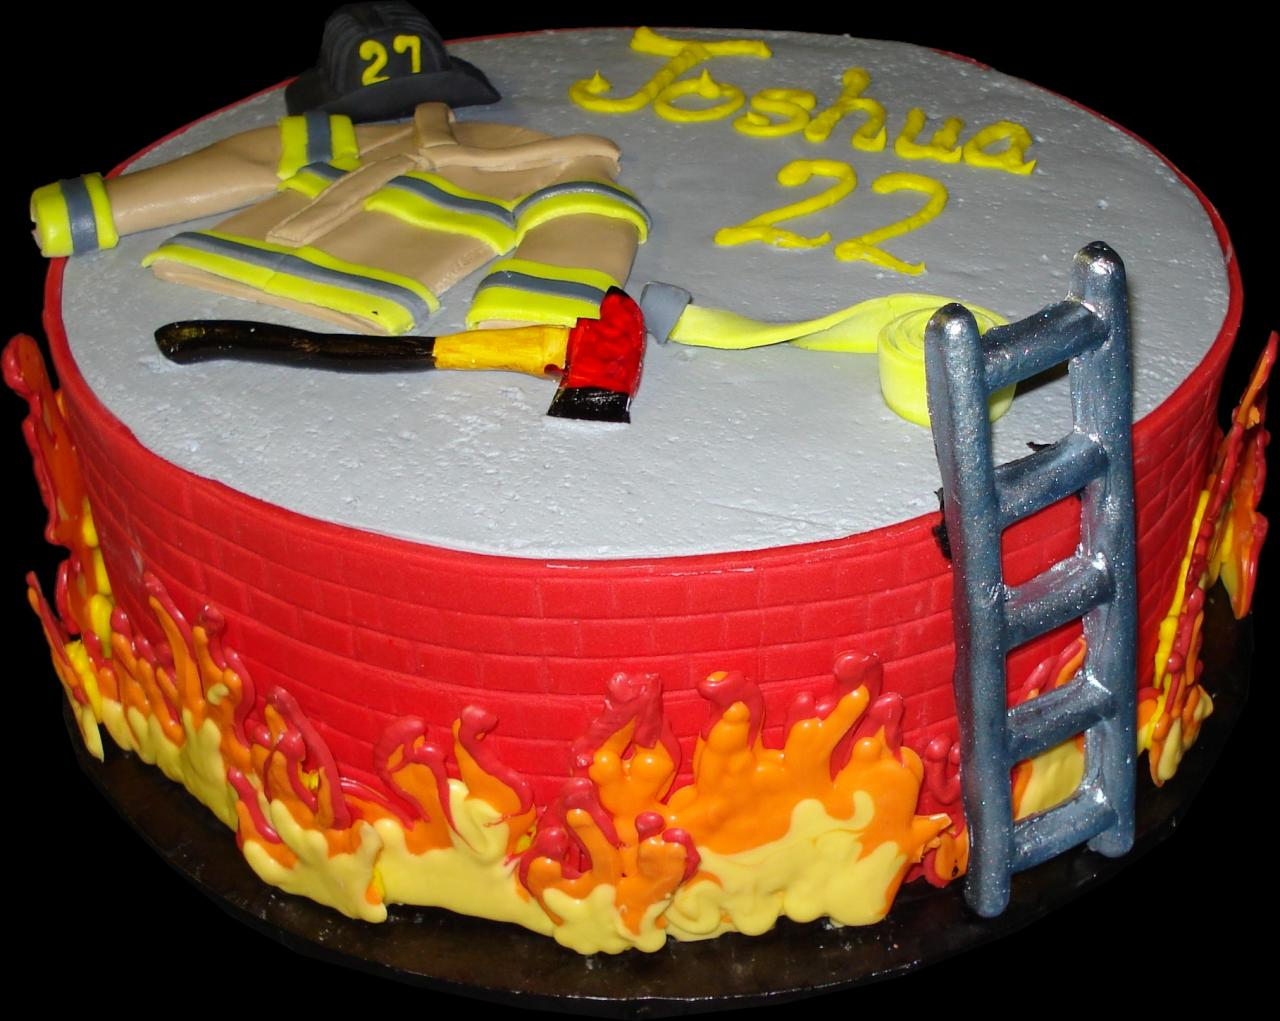 Firefighter Birthday Cake Decorations Shelly Lighting